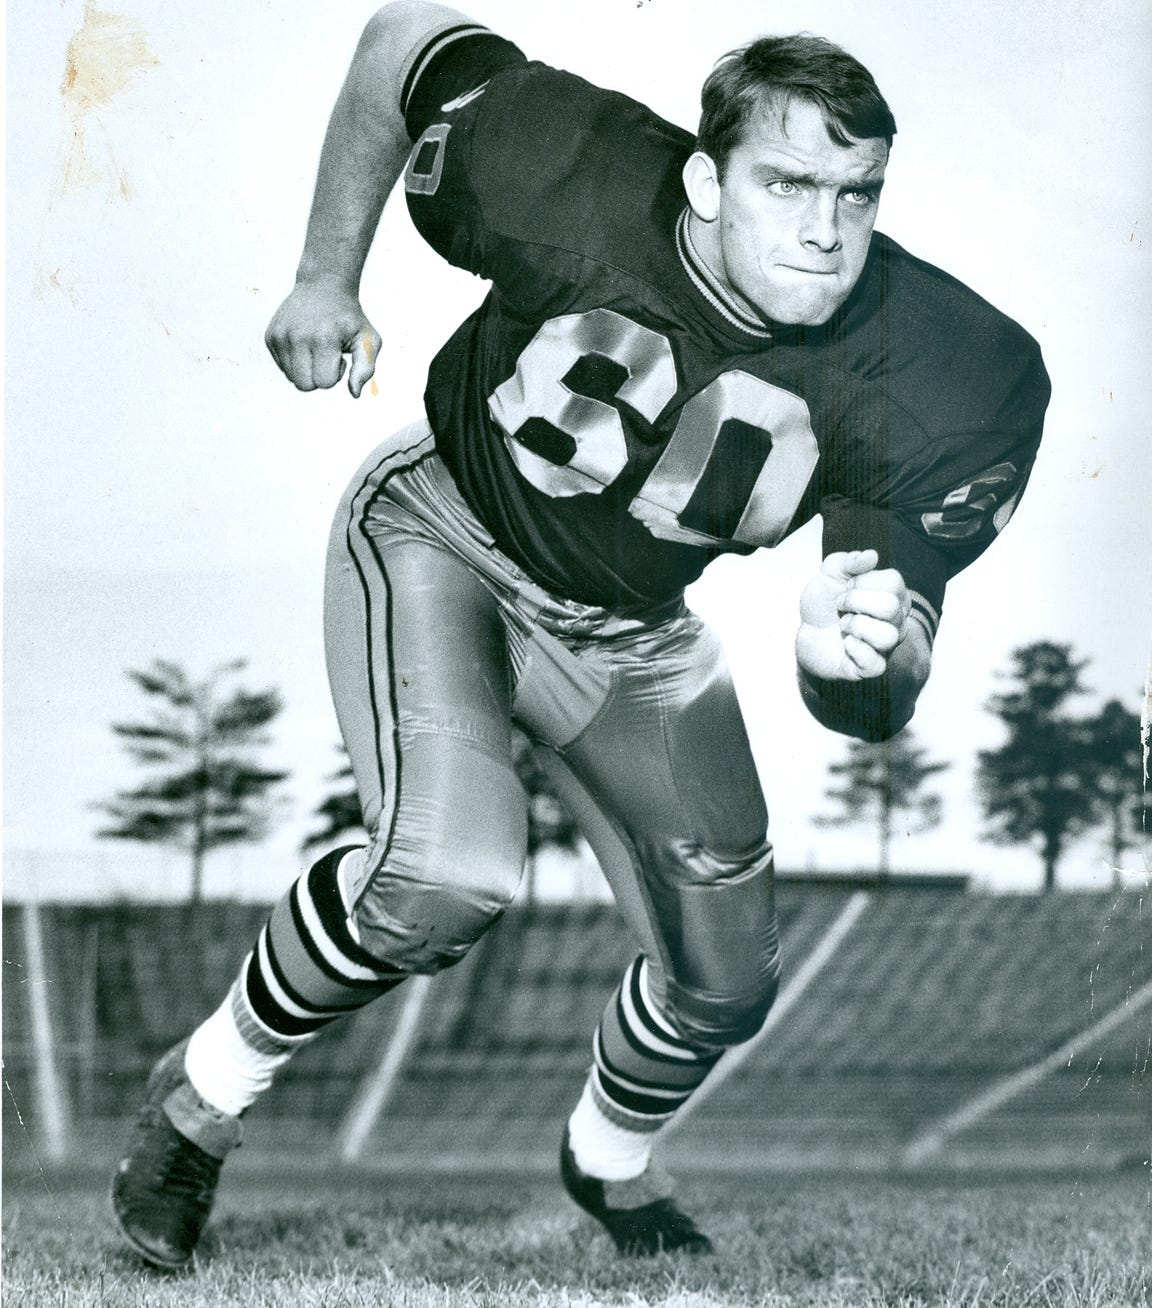 Chuck Kyle is one of only a handful of Purdue football players to earn first team All-Big Ten honors three times.